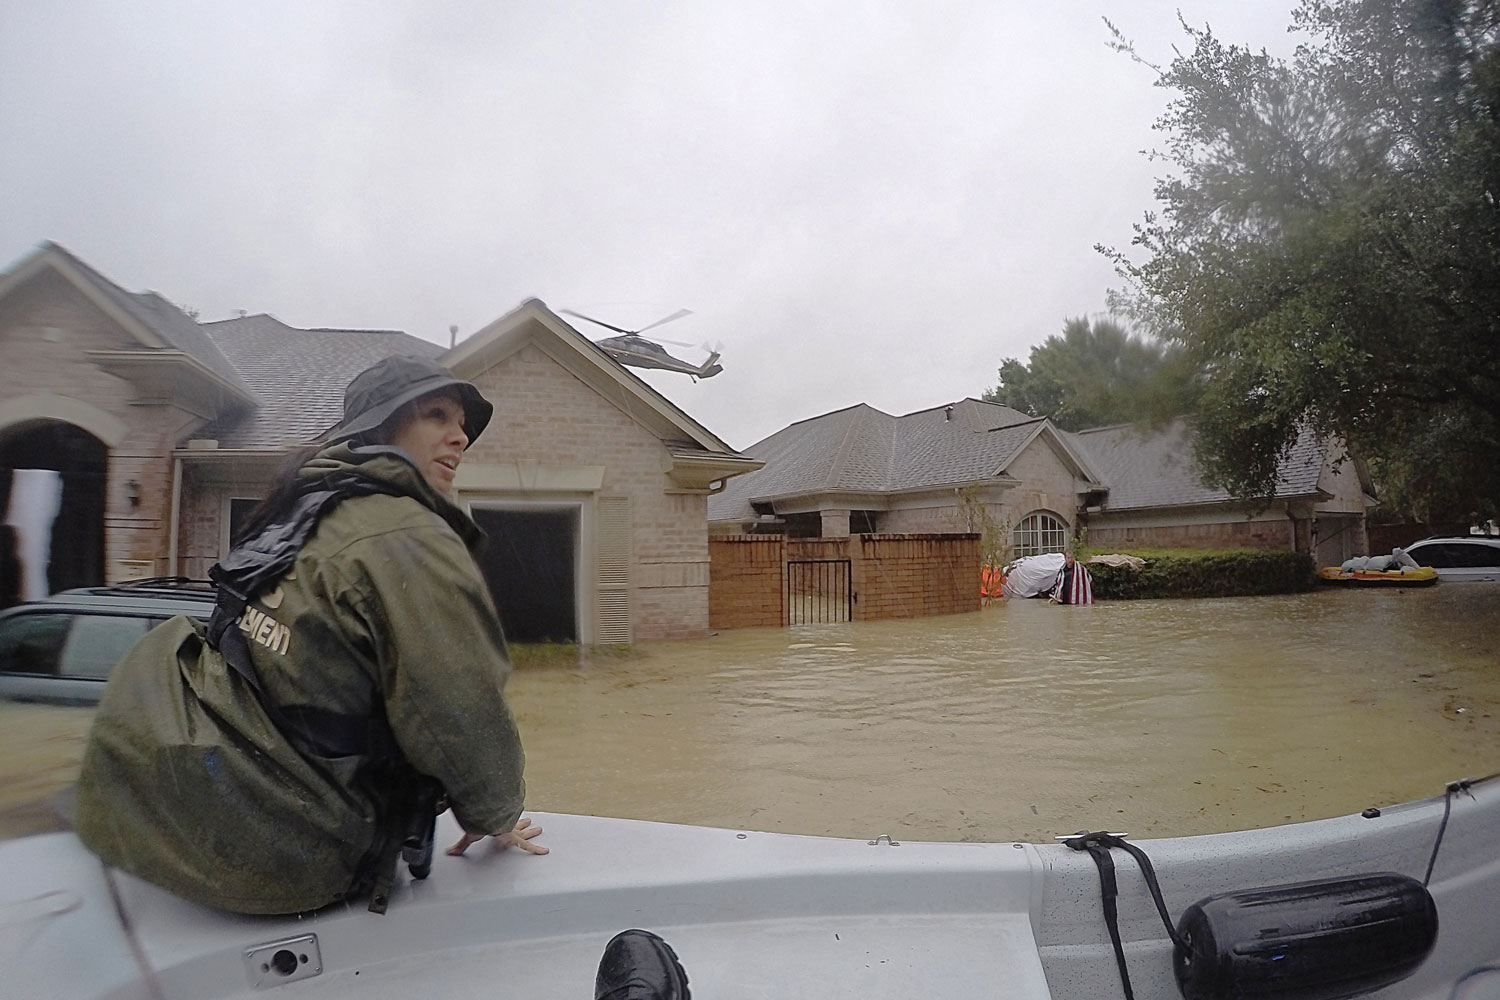 Neighborhood under water with guard in boat in foreground and helicopter flying overhead in background